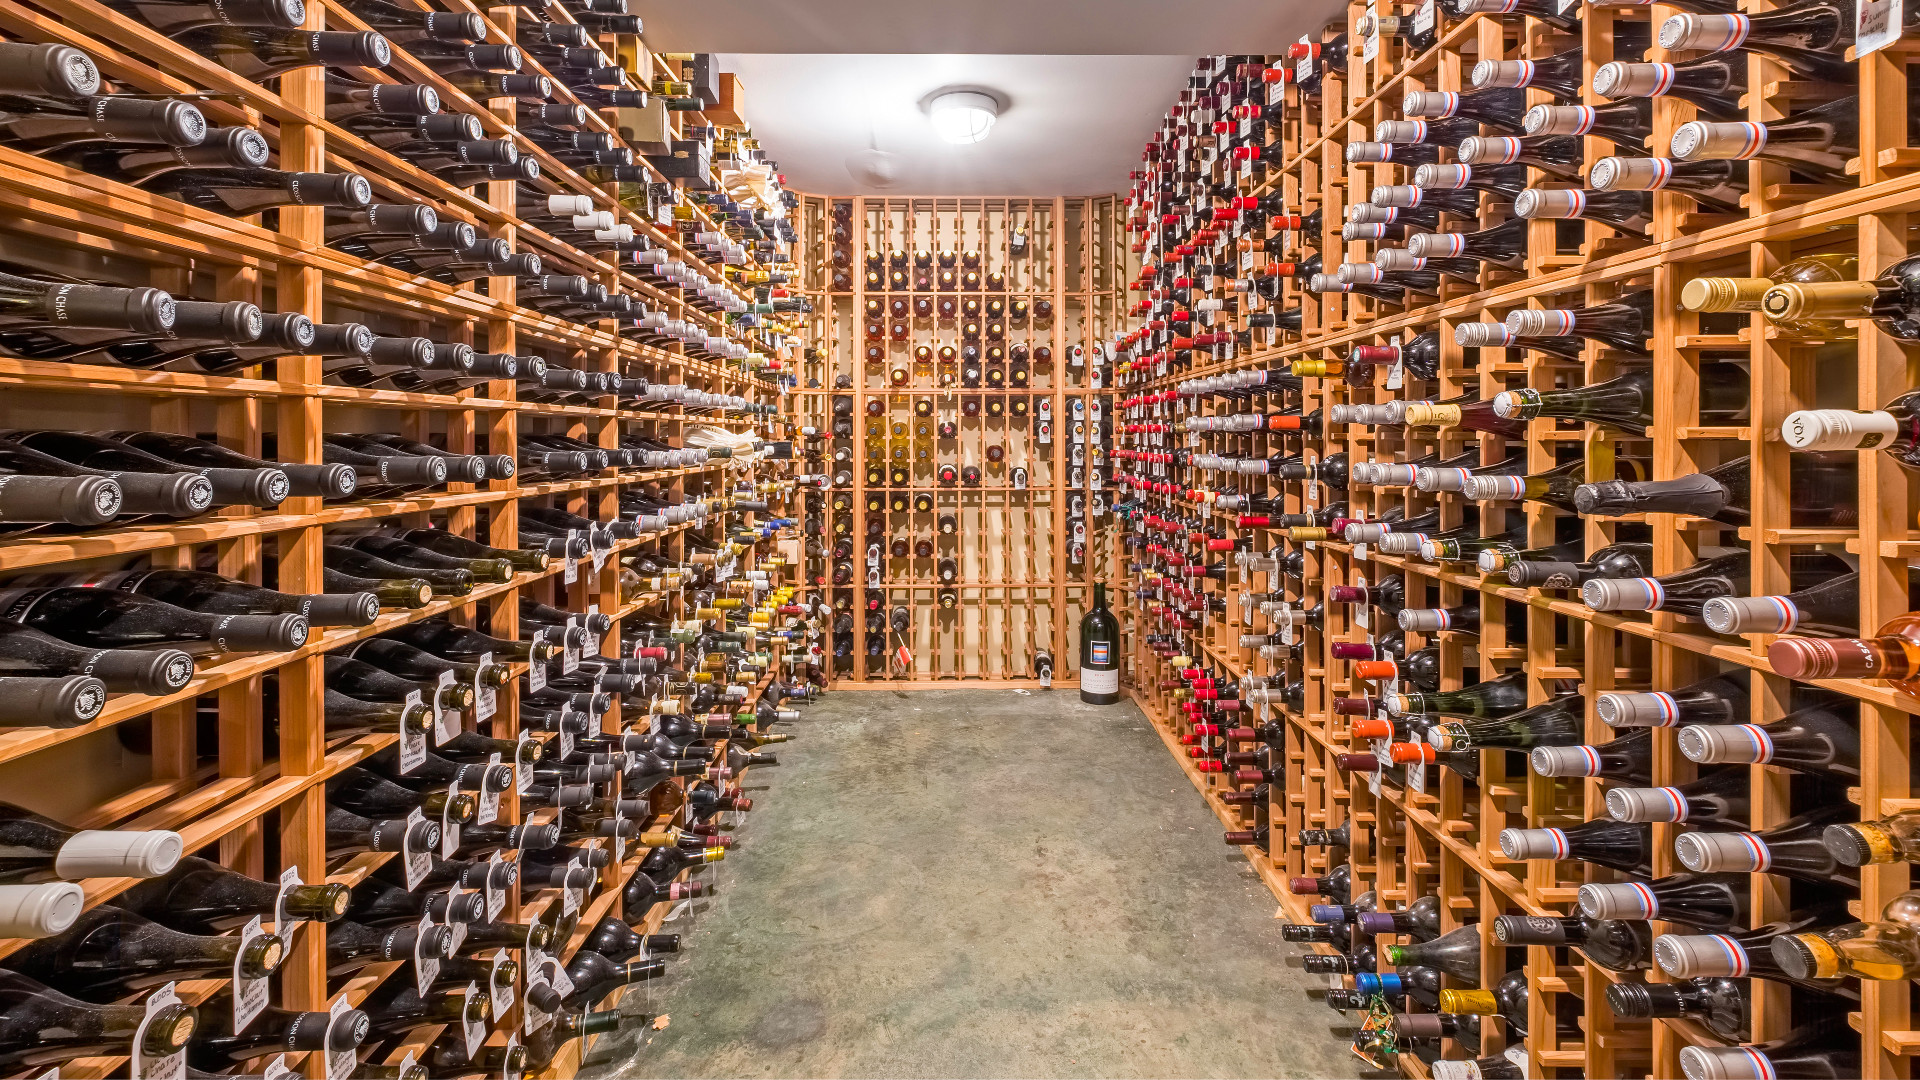 A photo of the wine cellar.